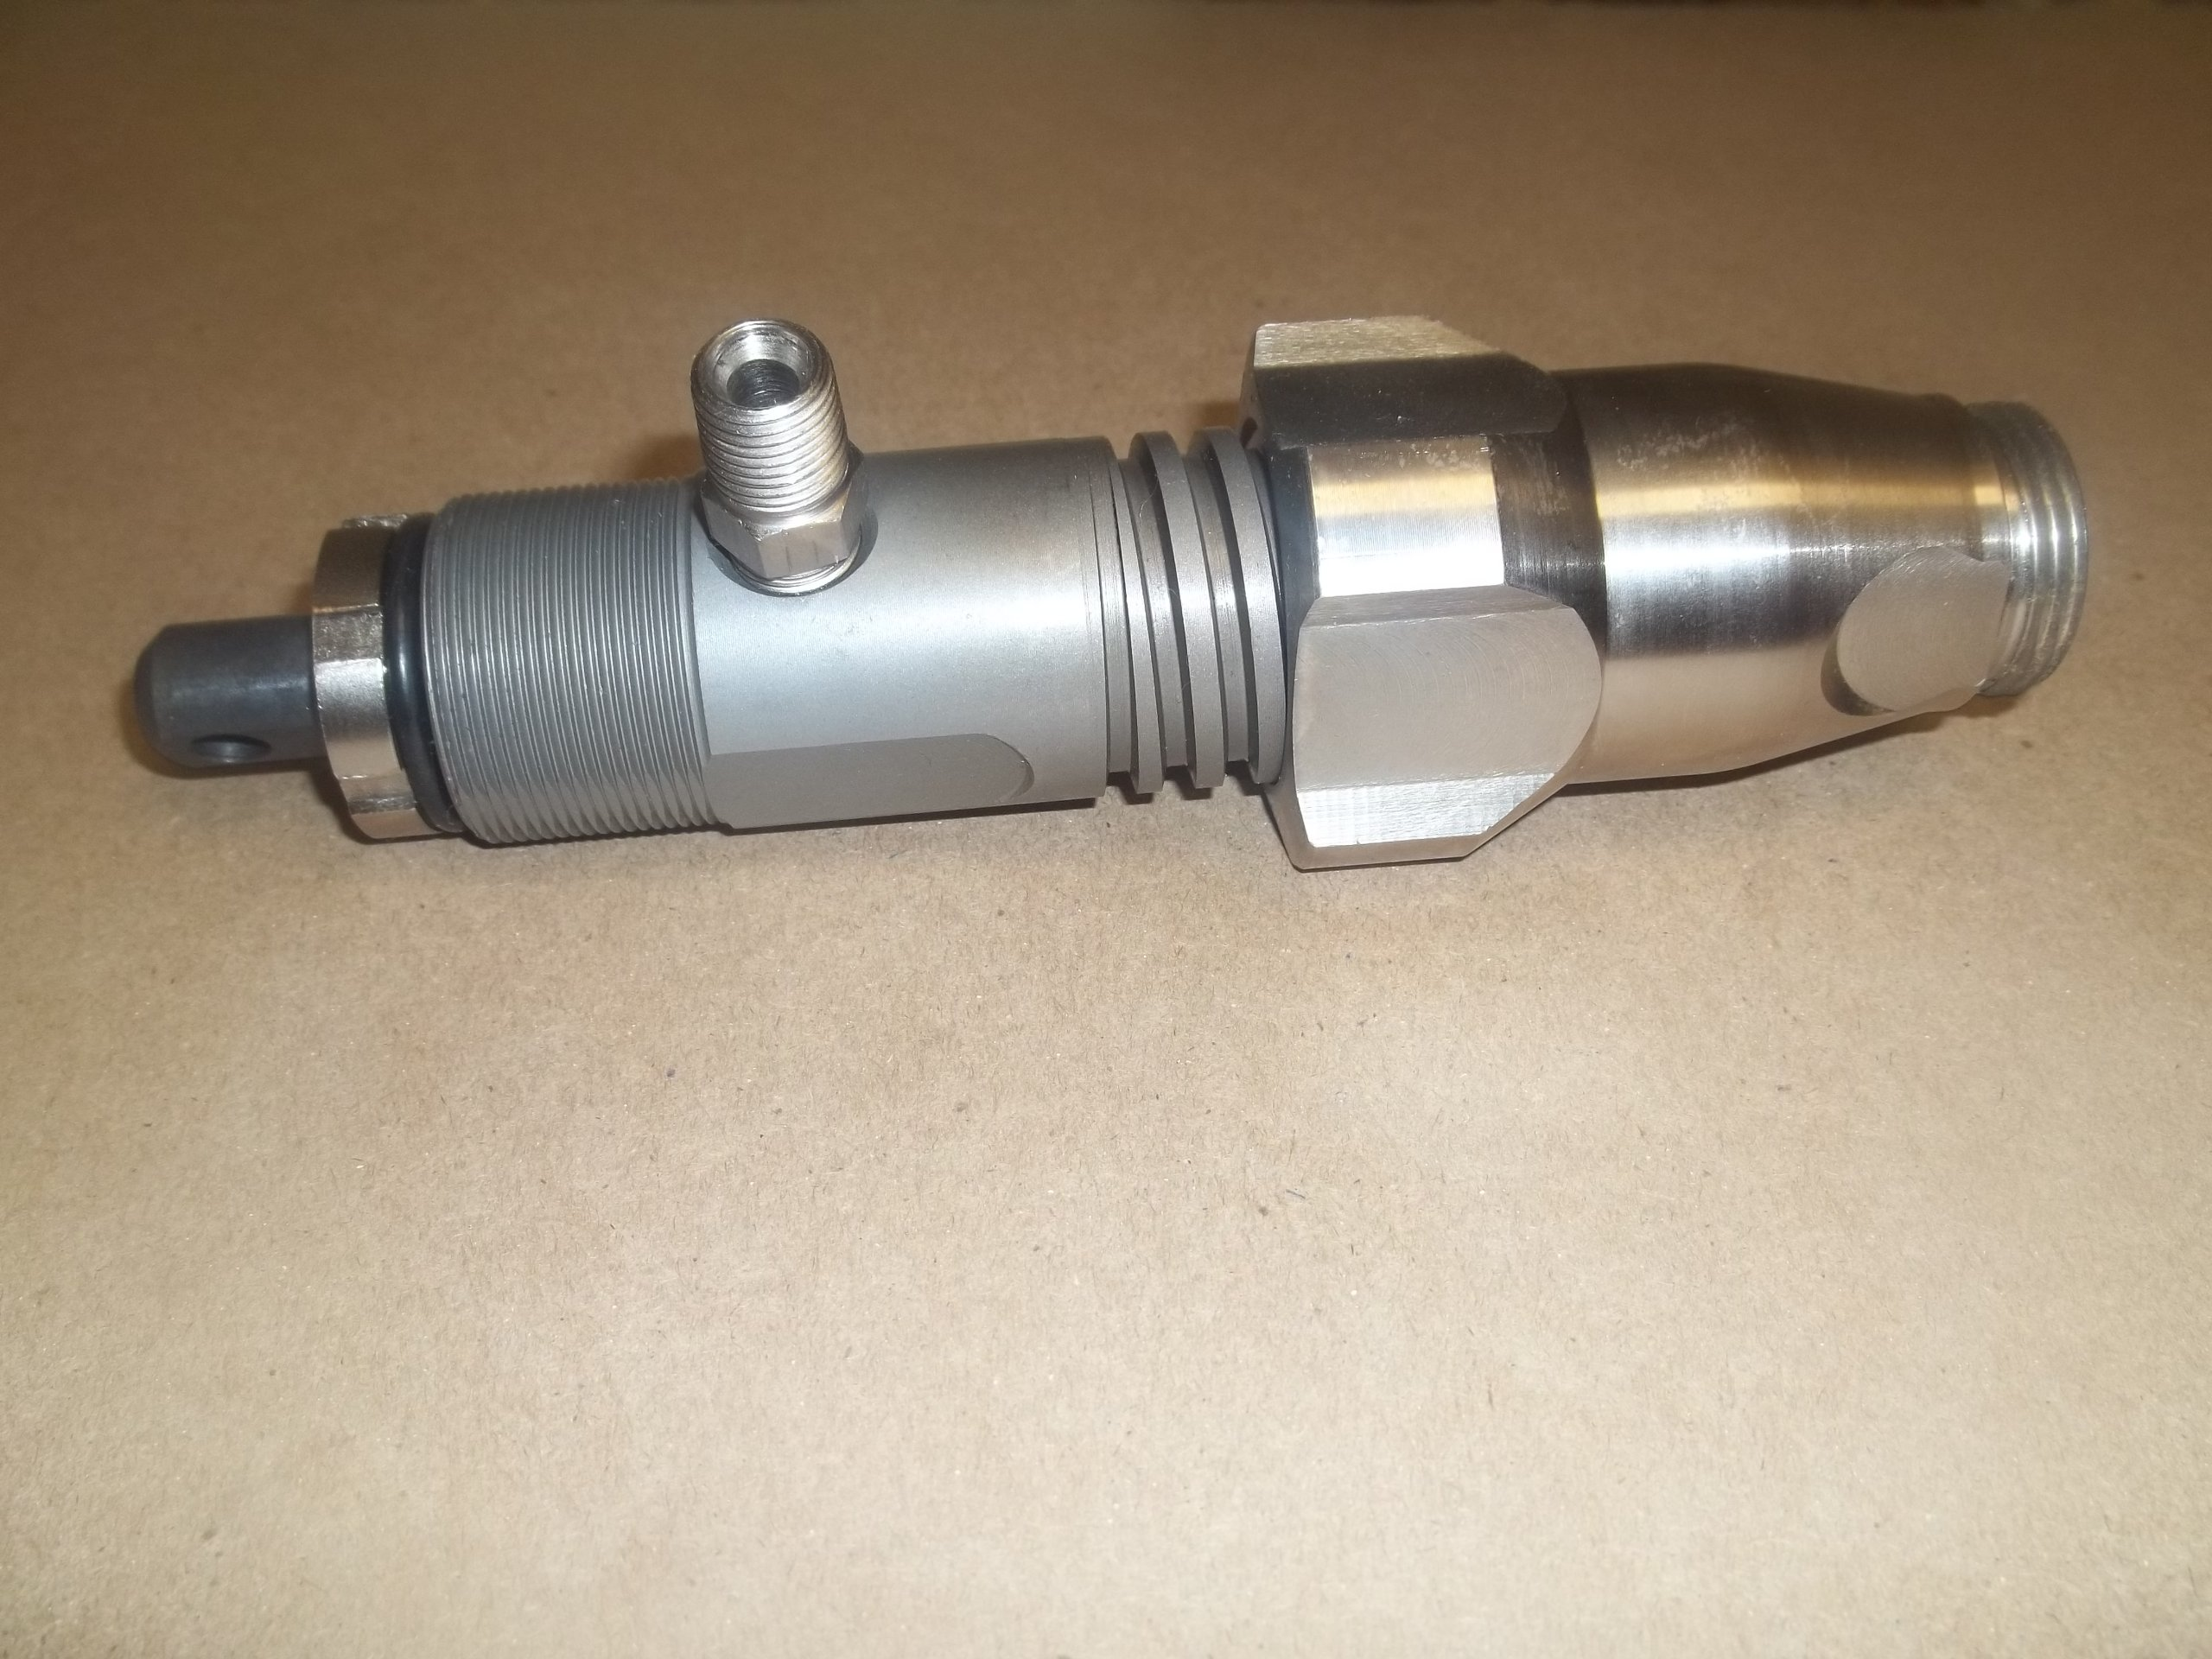 Replacement Pump for Graco Airless Spray Machine 390,395,495,595, & More